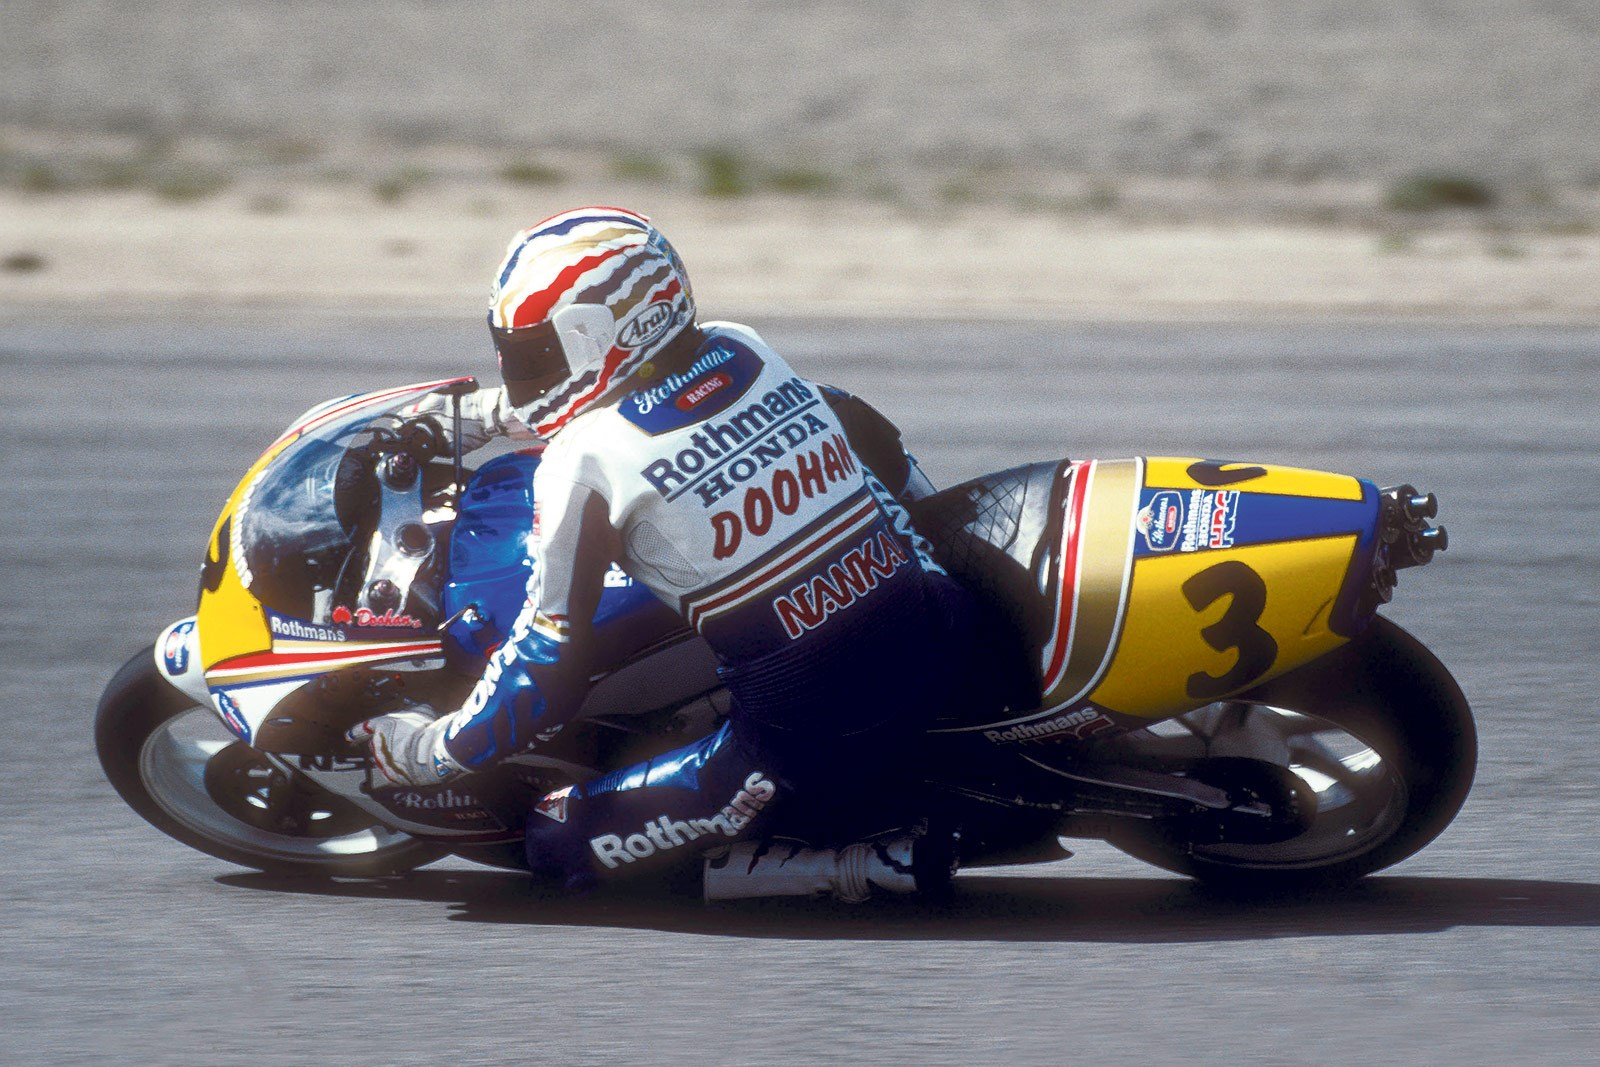 Hondas For Sale >> Mick's Millions: What Doohan did next | MCN